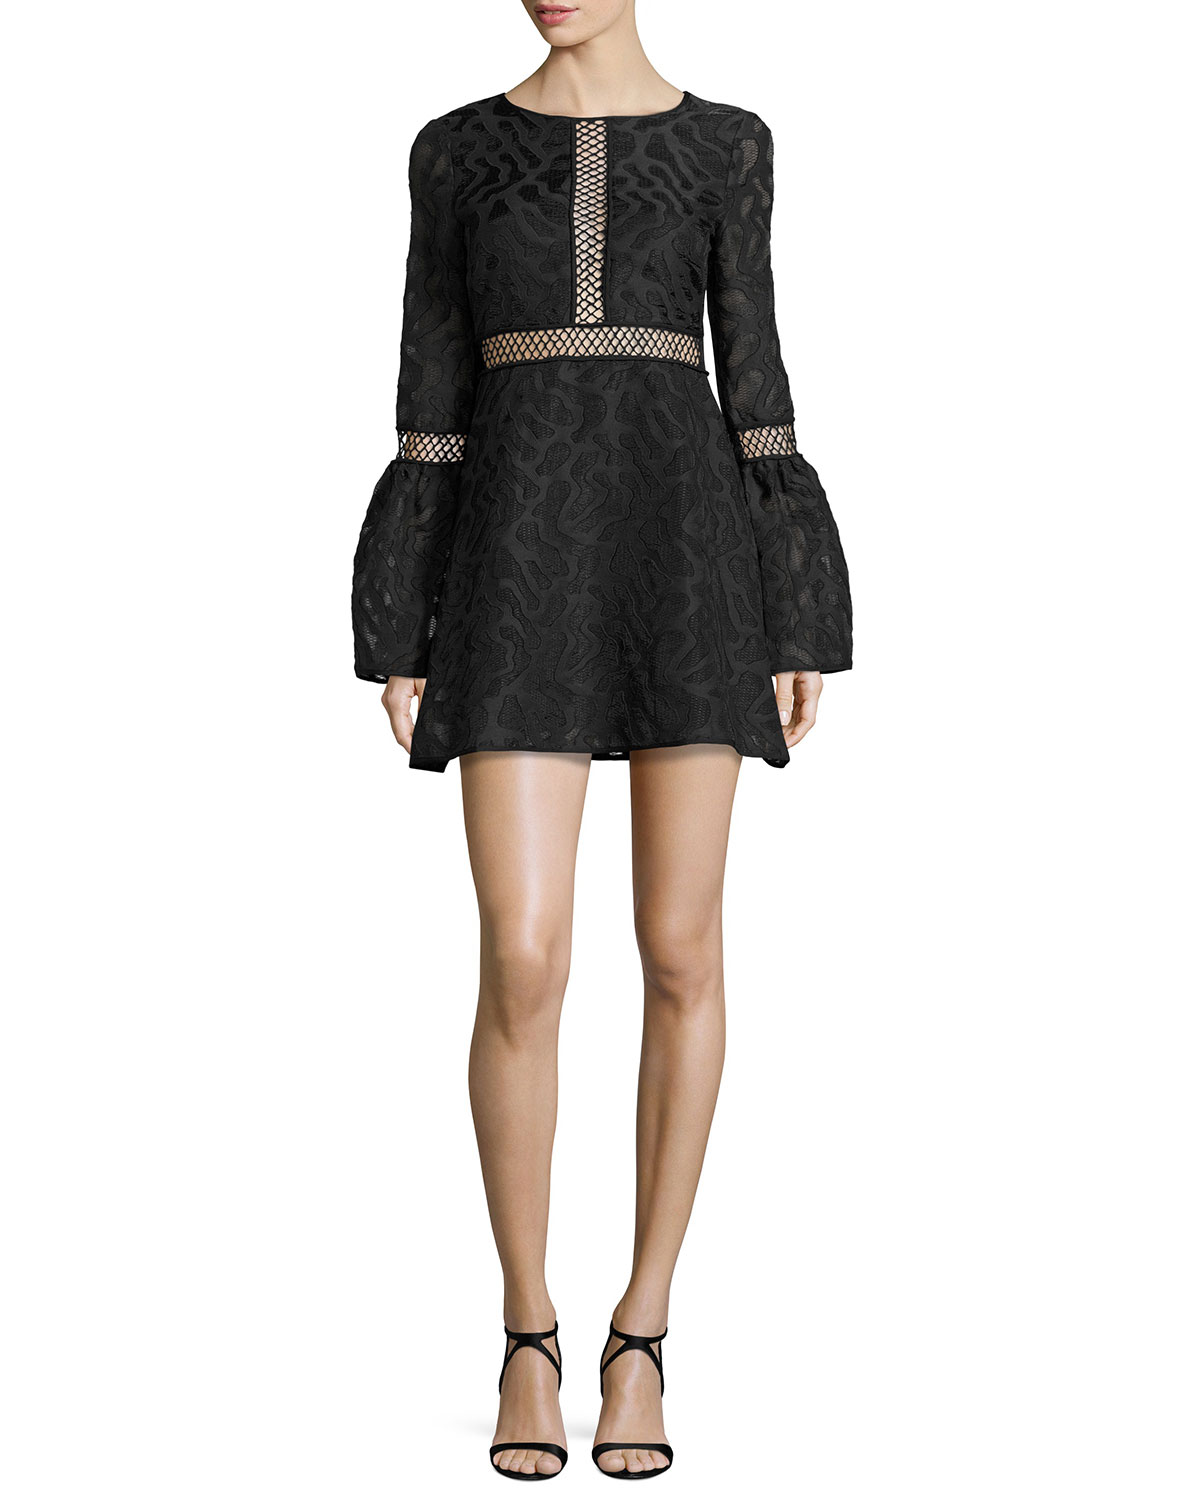 Zanya Long-Sleeve Jacquard Cocktail Dress, Black